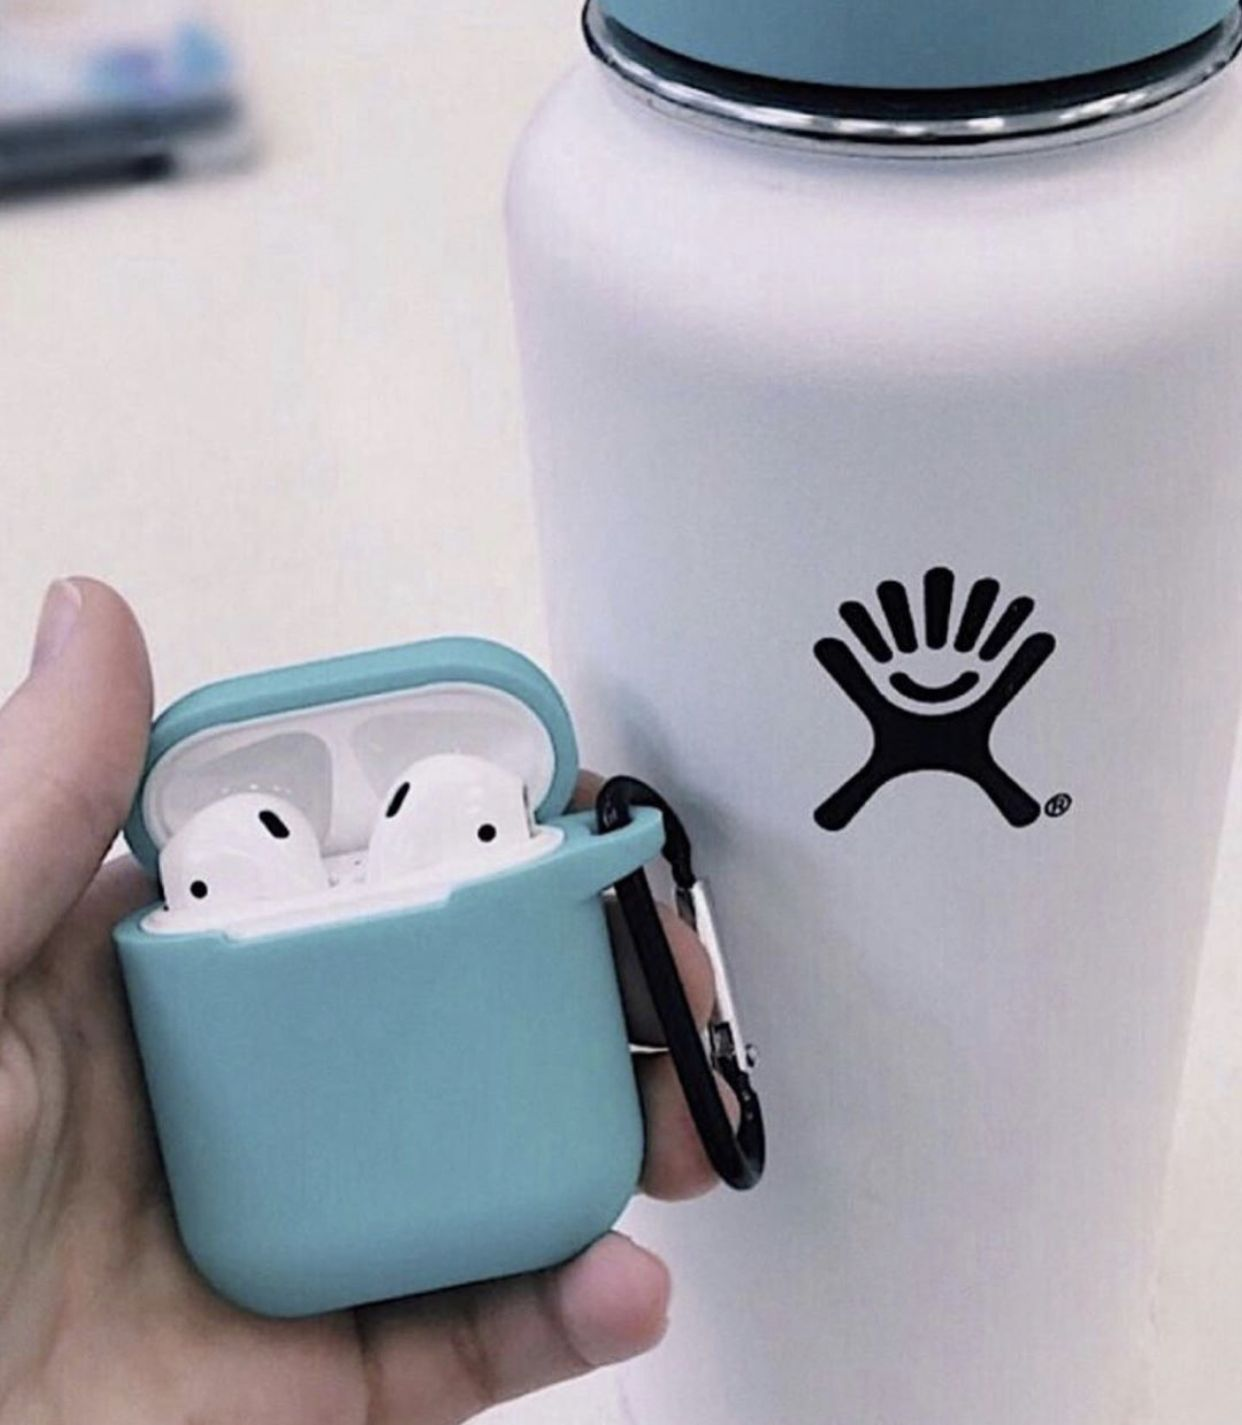 Check out the airpods cases at Airpod